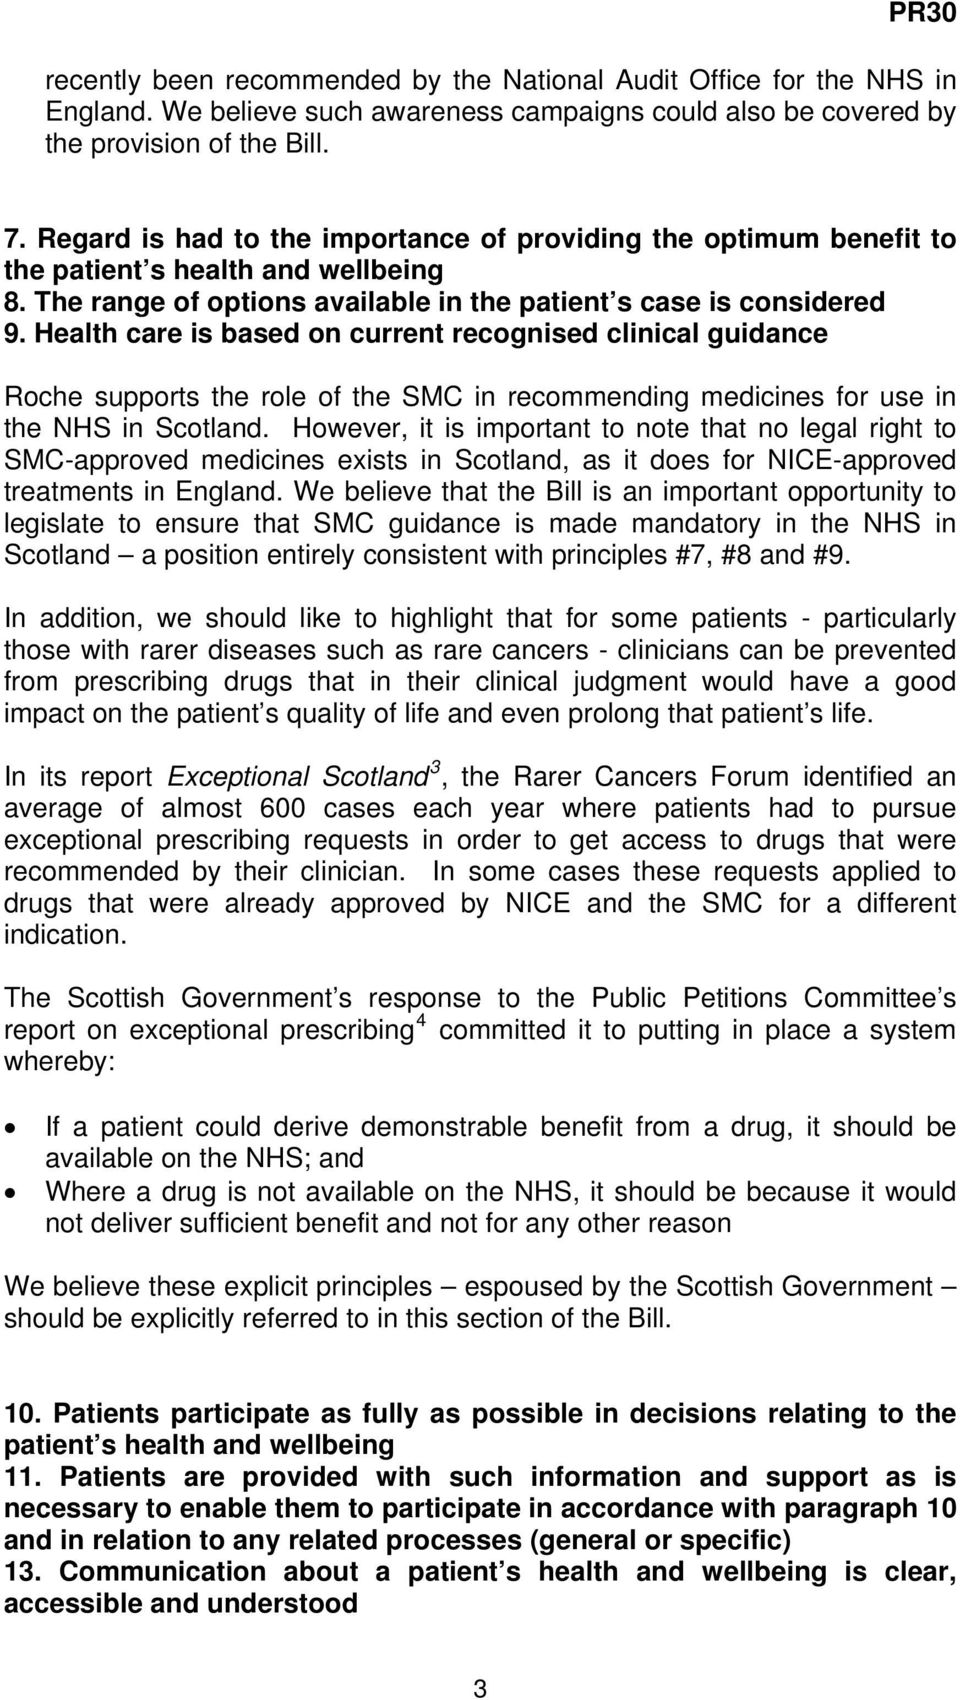 Health care is based on current recognised clinical guidance Roche supports the role of the SMC in recommending medicines for use in the NHS in Scotland.